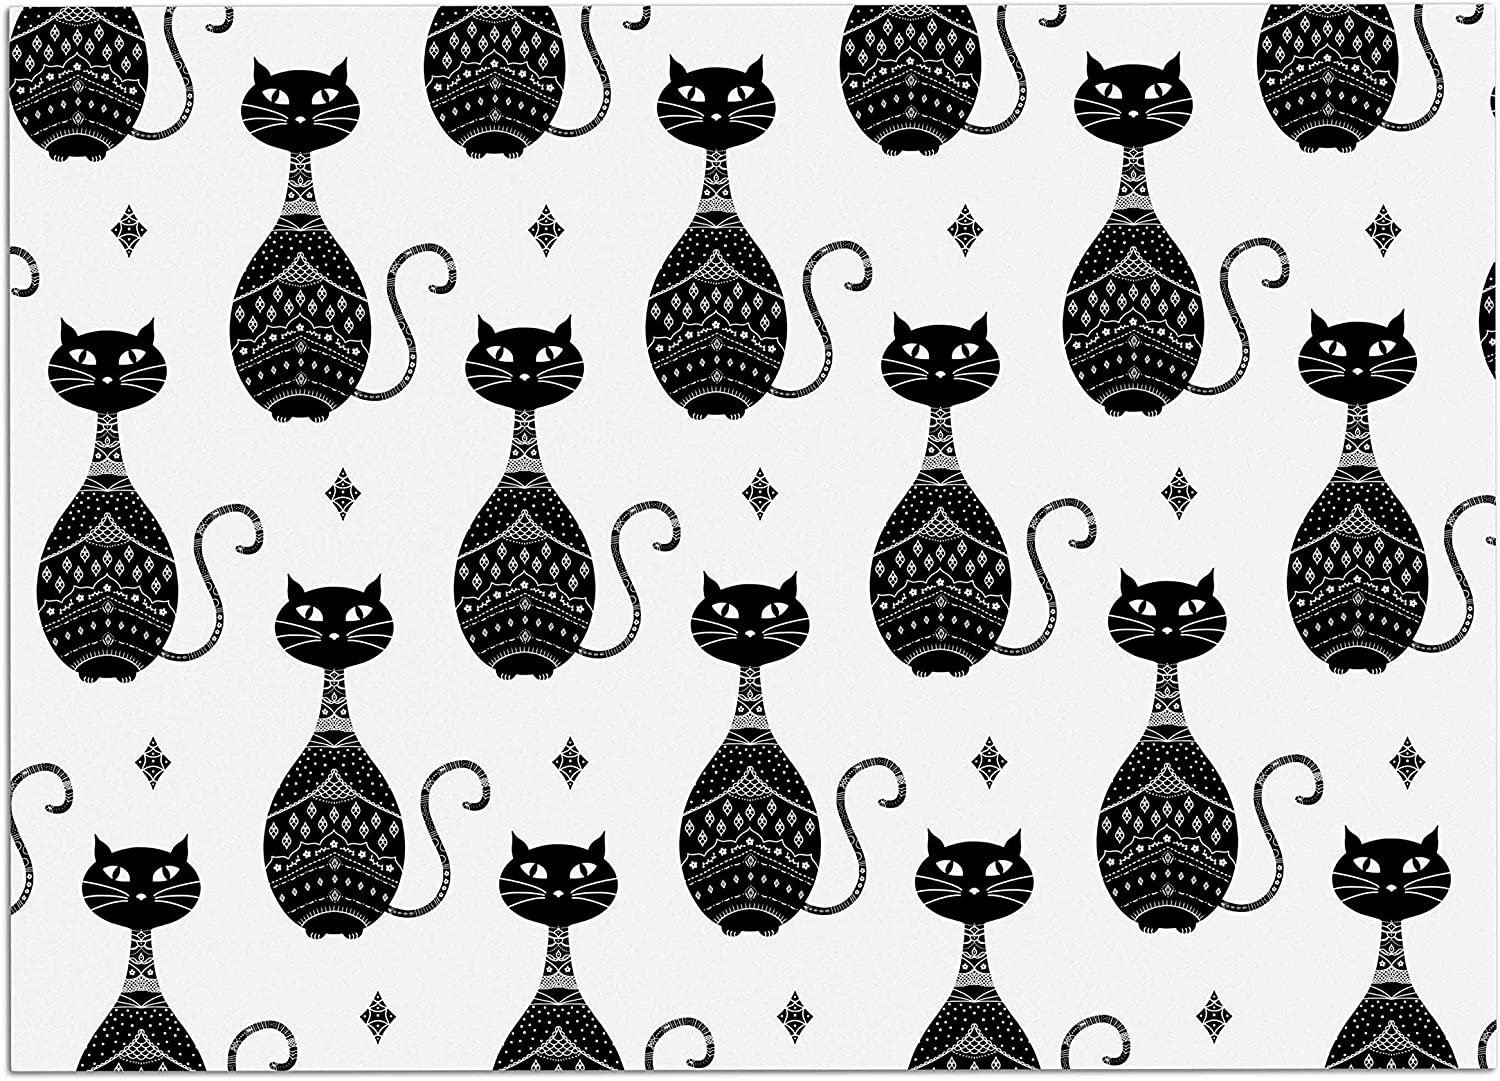 KESS InHouse CB2022ADM02 Cristina Bianco Design Black Cats Pattern White Black Dog Place Mat, 24 x15